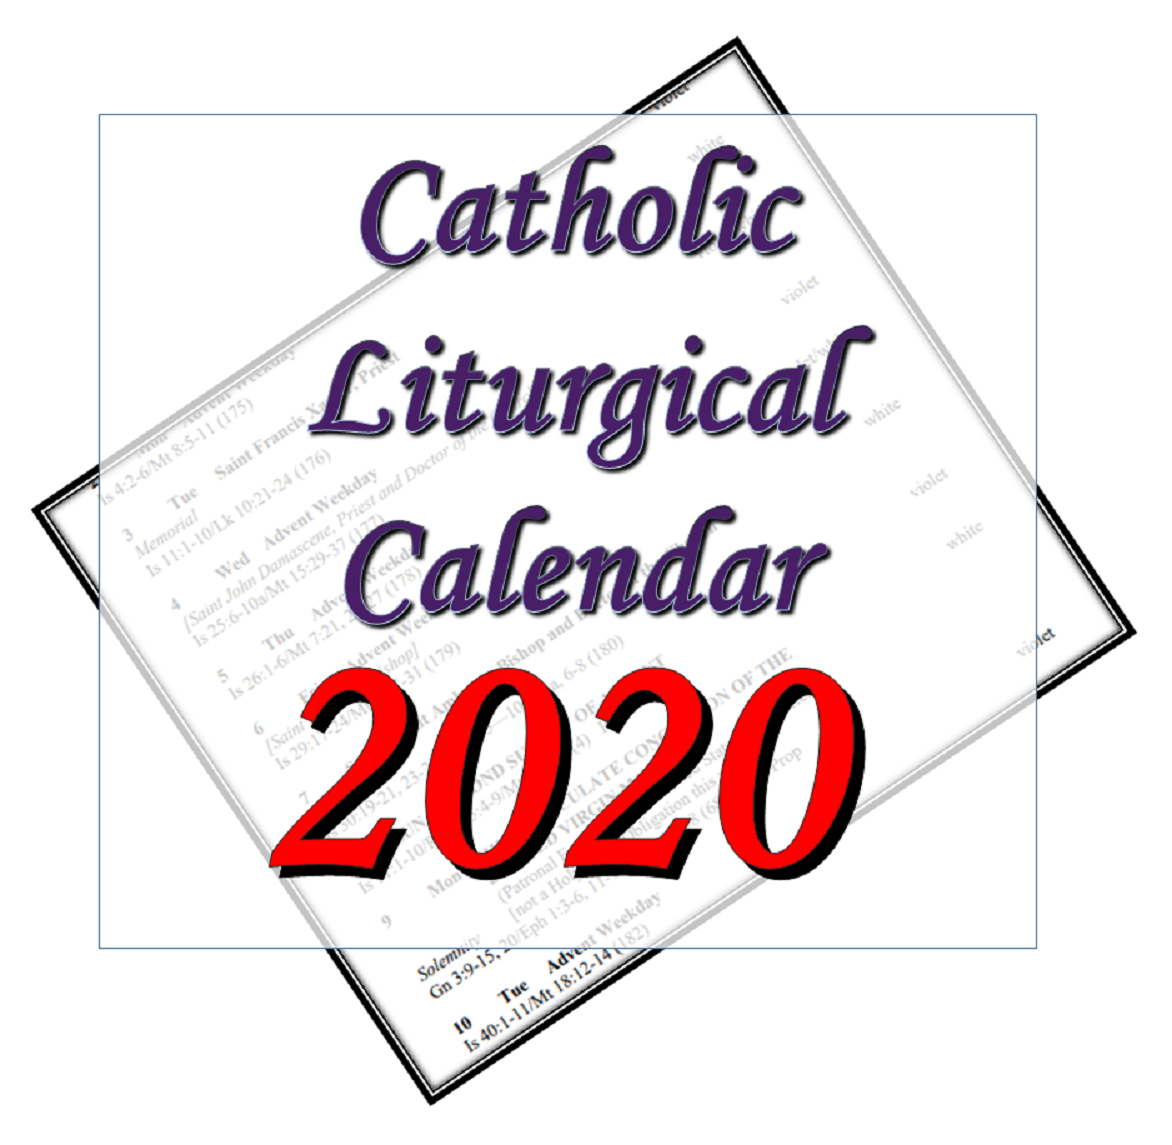 Liturgytools: Catholic Liturgical Calendars For 2020 with Catholic Liturgy Calendar 2020